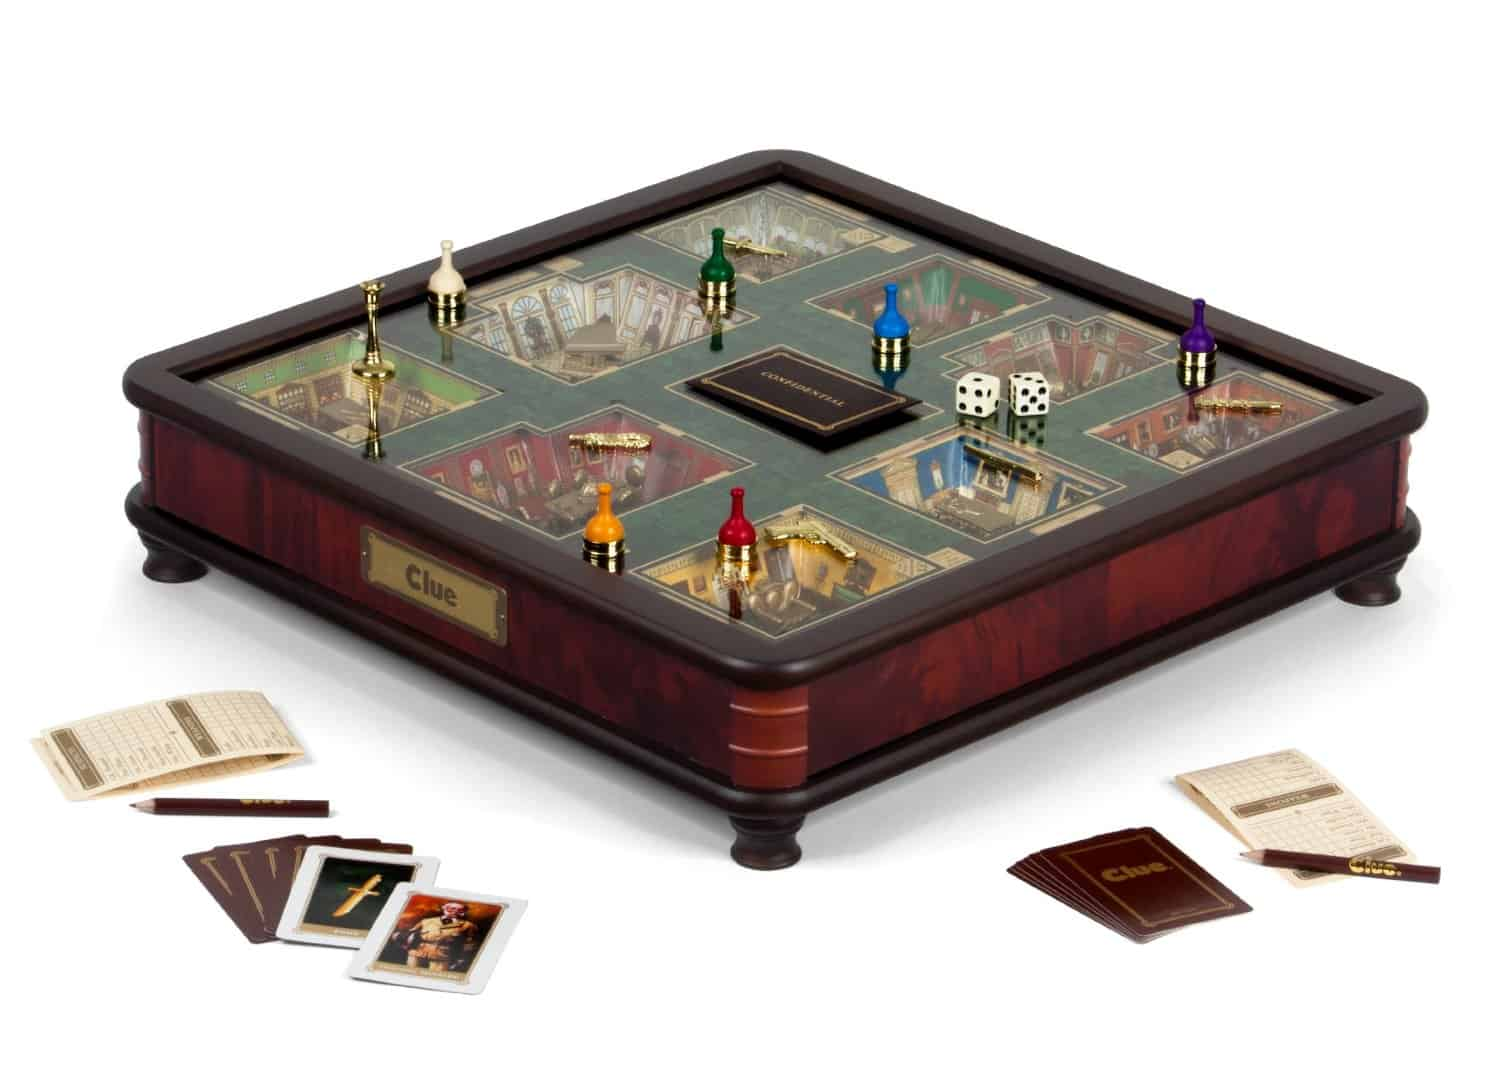 Clue Luxury Edition Interesting Product Cool Board Game Made of Wood Collectors Item